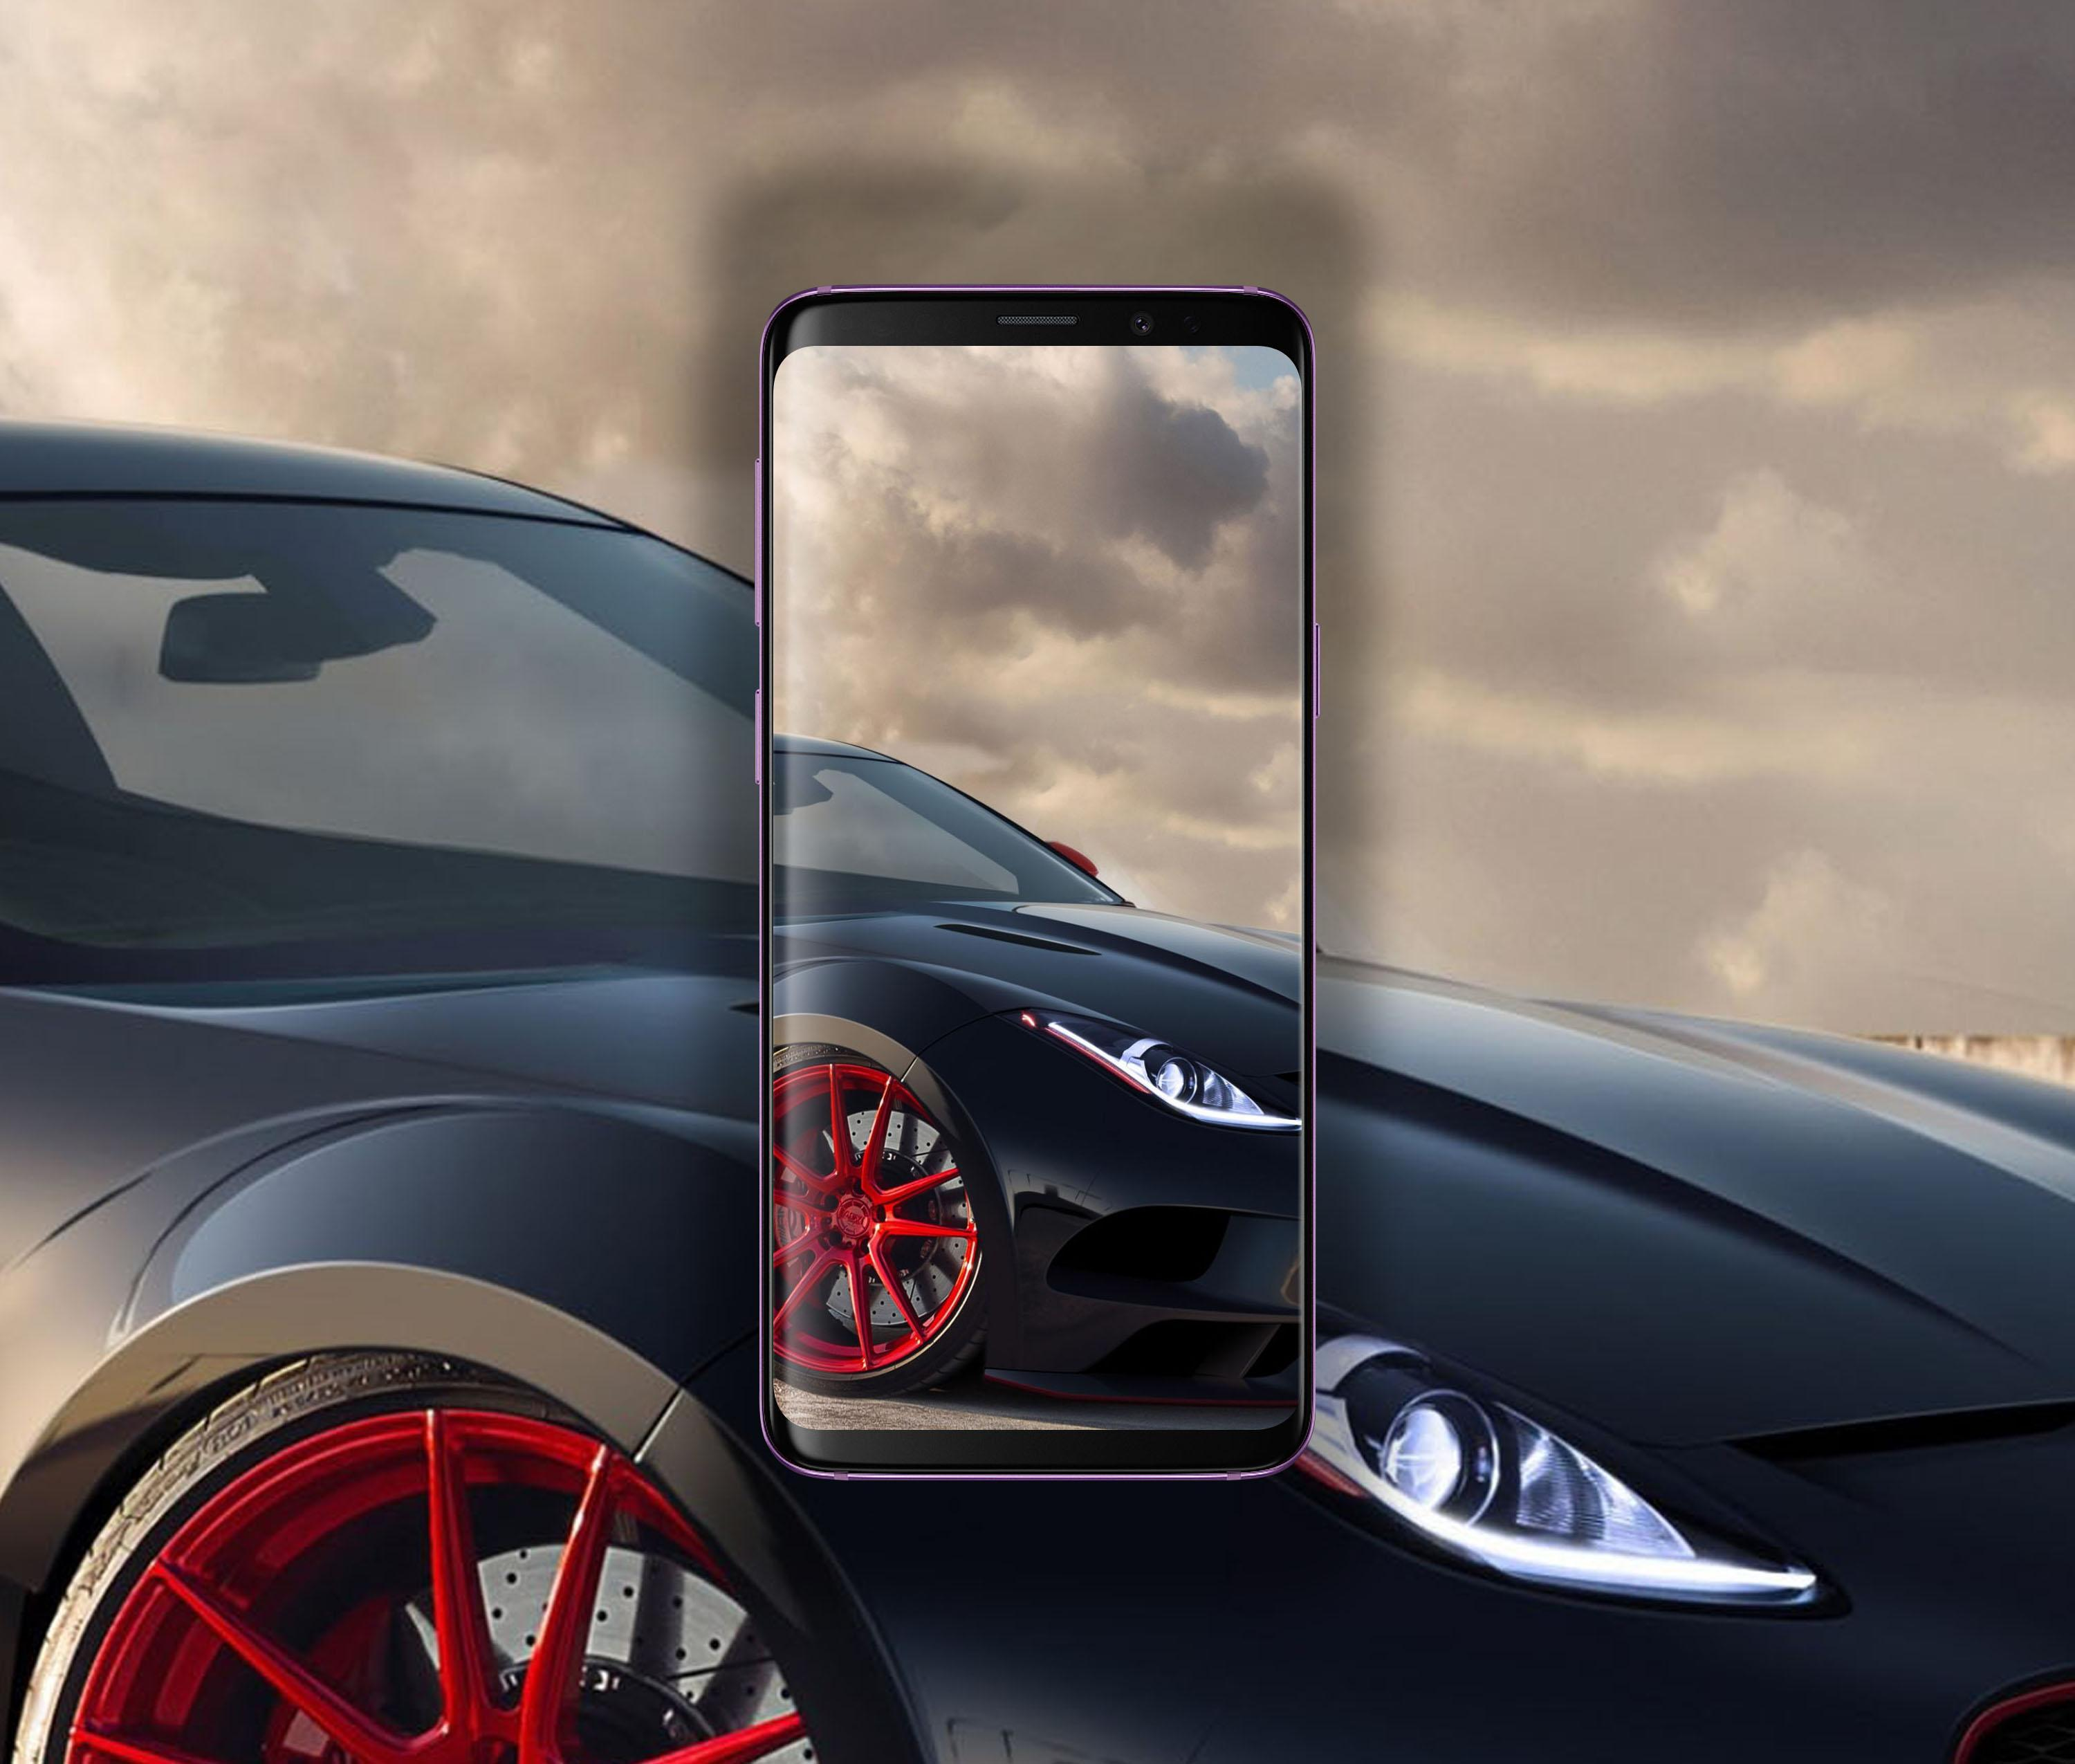 Mobil Sport Wallpaper Hd For Android Apk Download